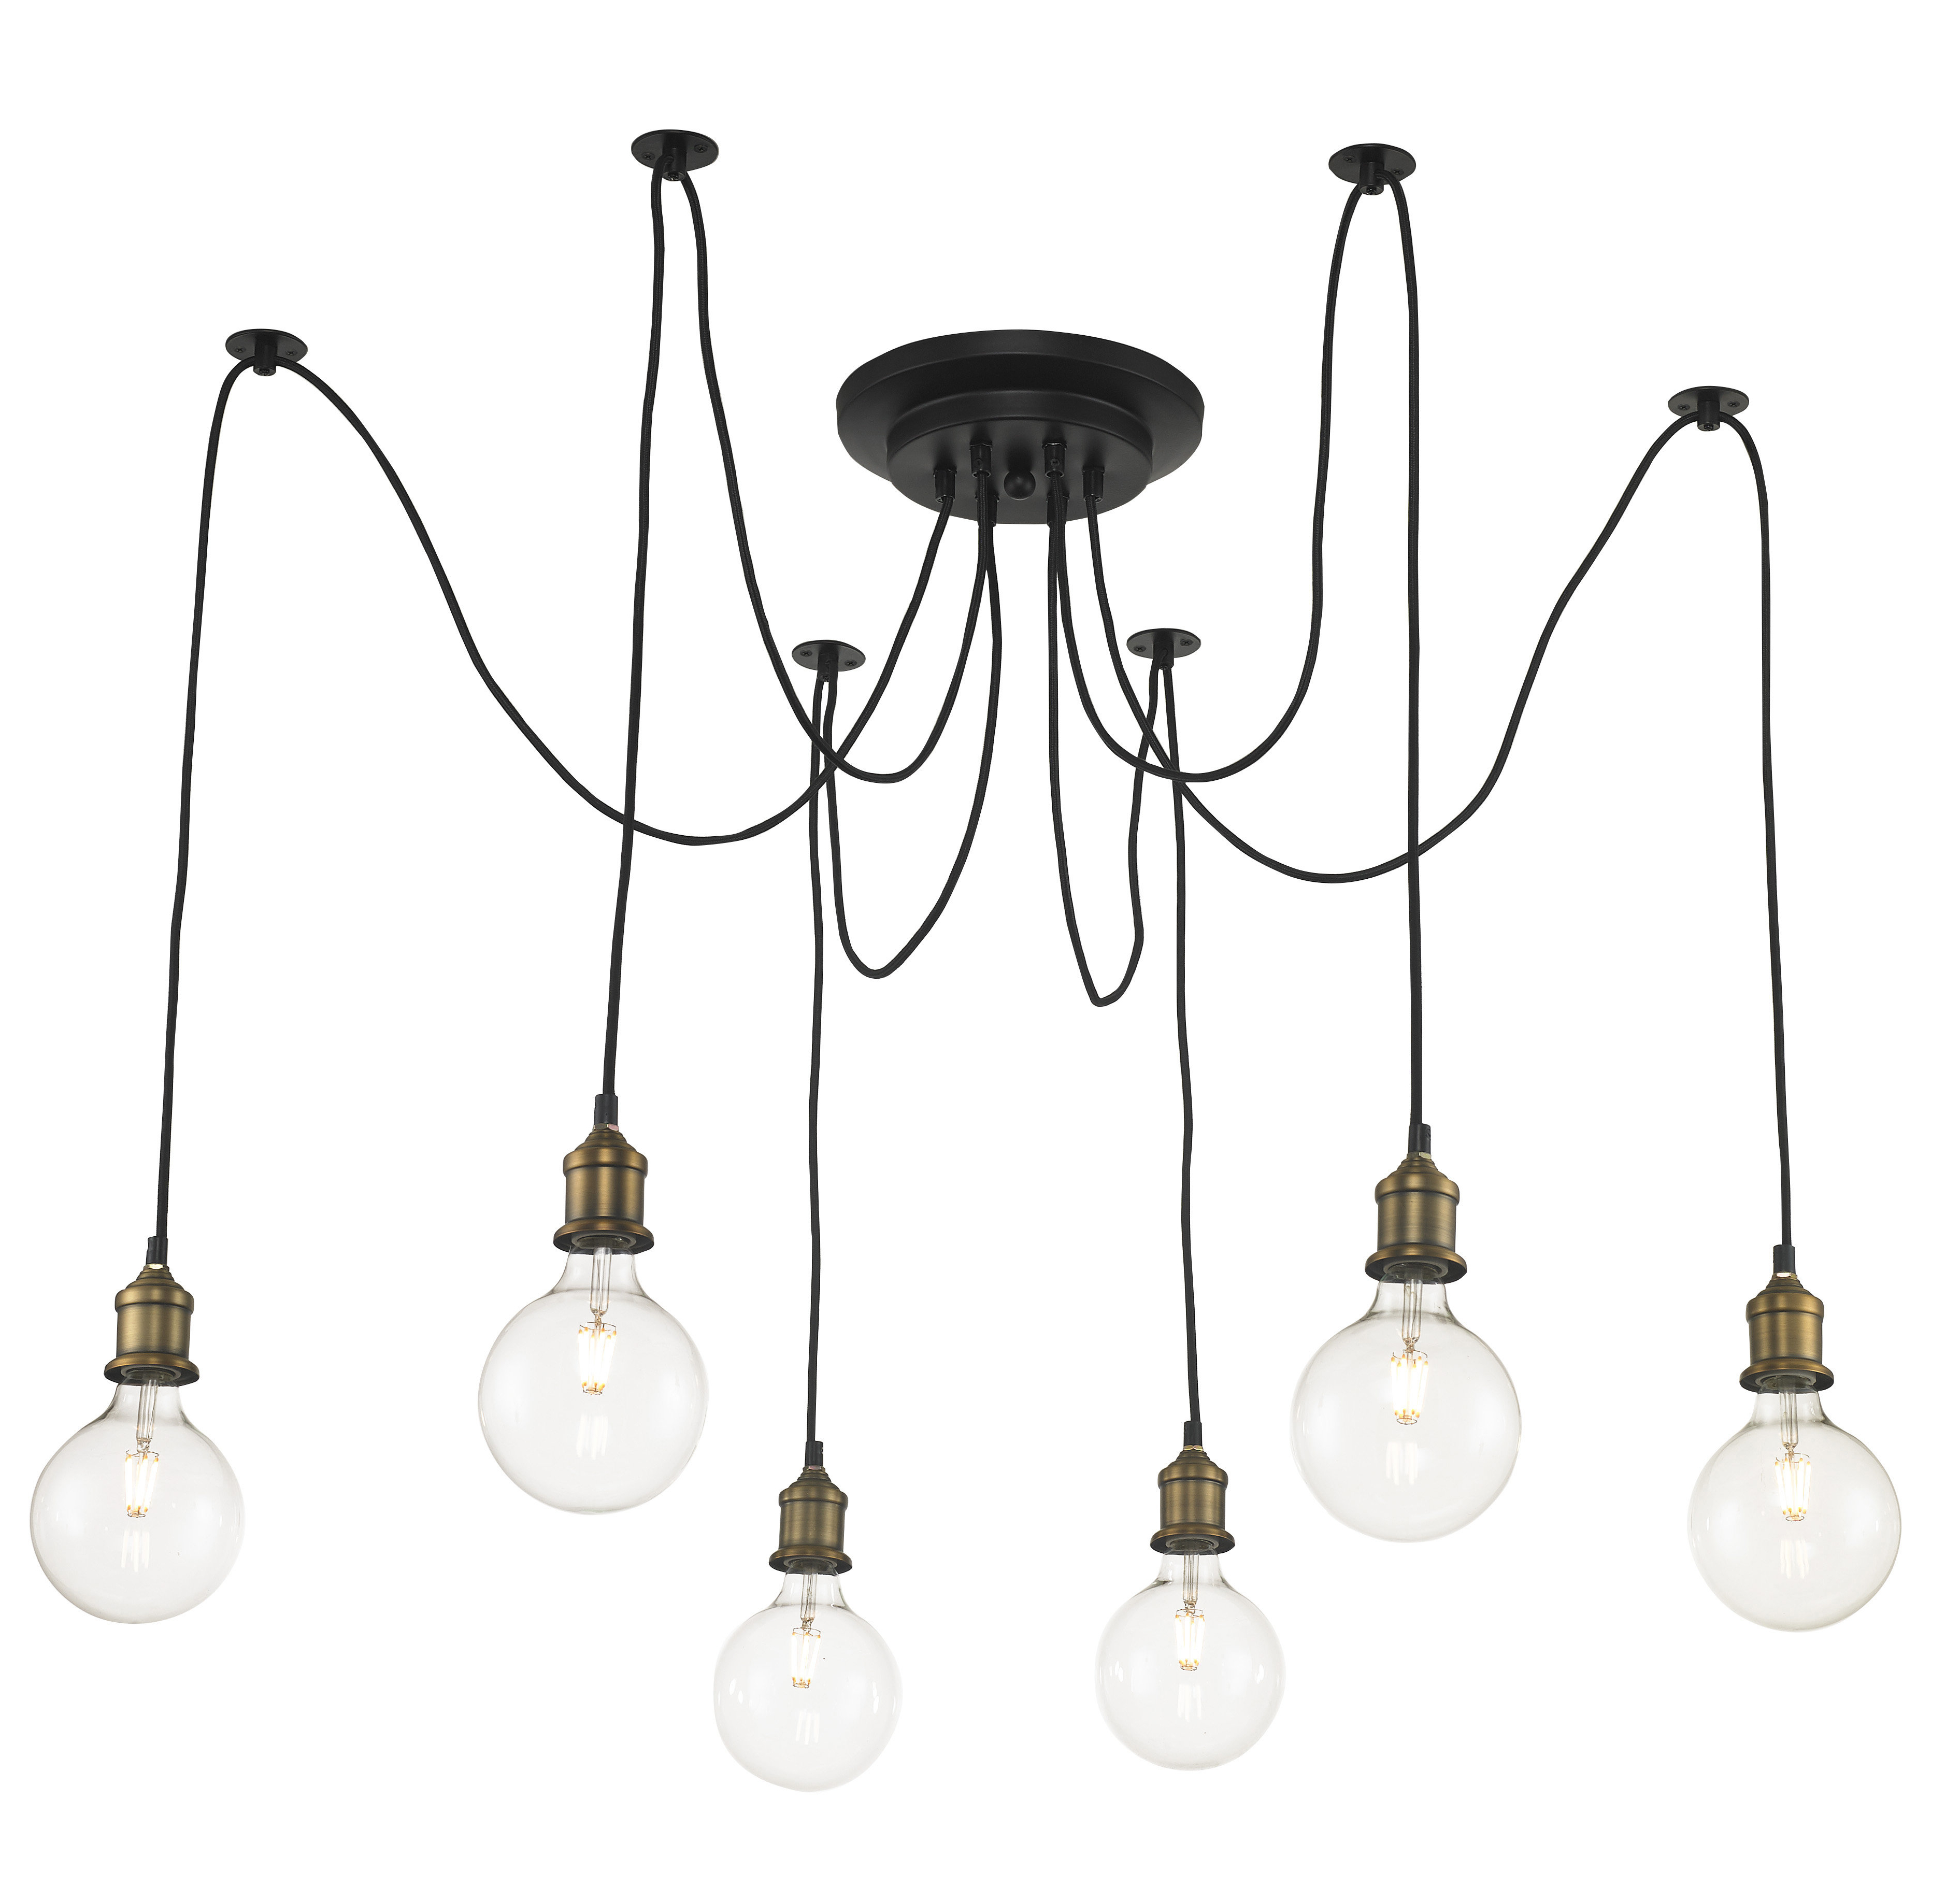 Most Recently Released 4 – 6 Light Cluster Pendant Lighting You'll Love In 2019 With Schutt 5 Light Cluster Pendants (View 12 of 25)